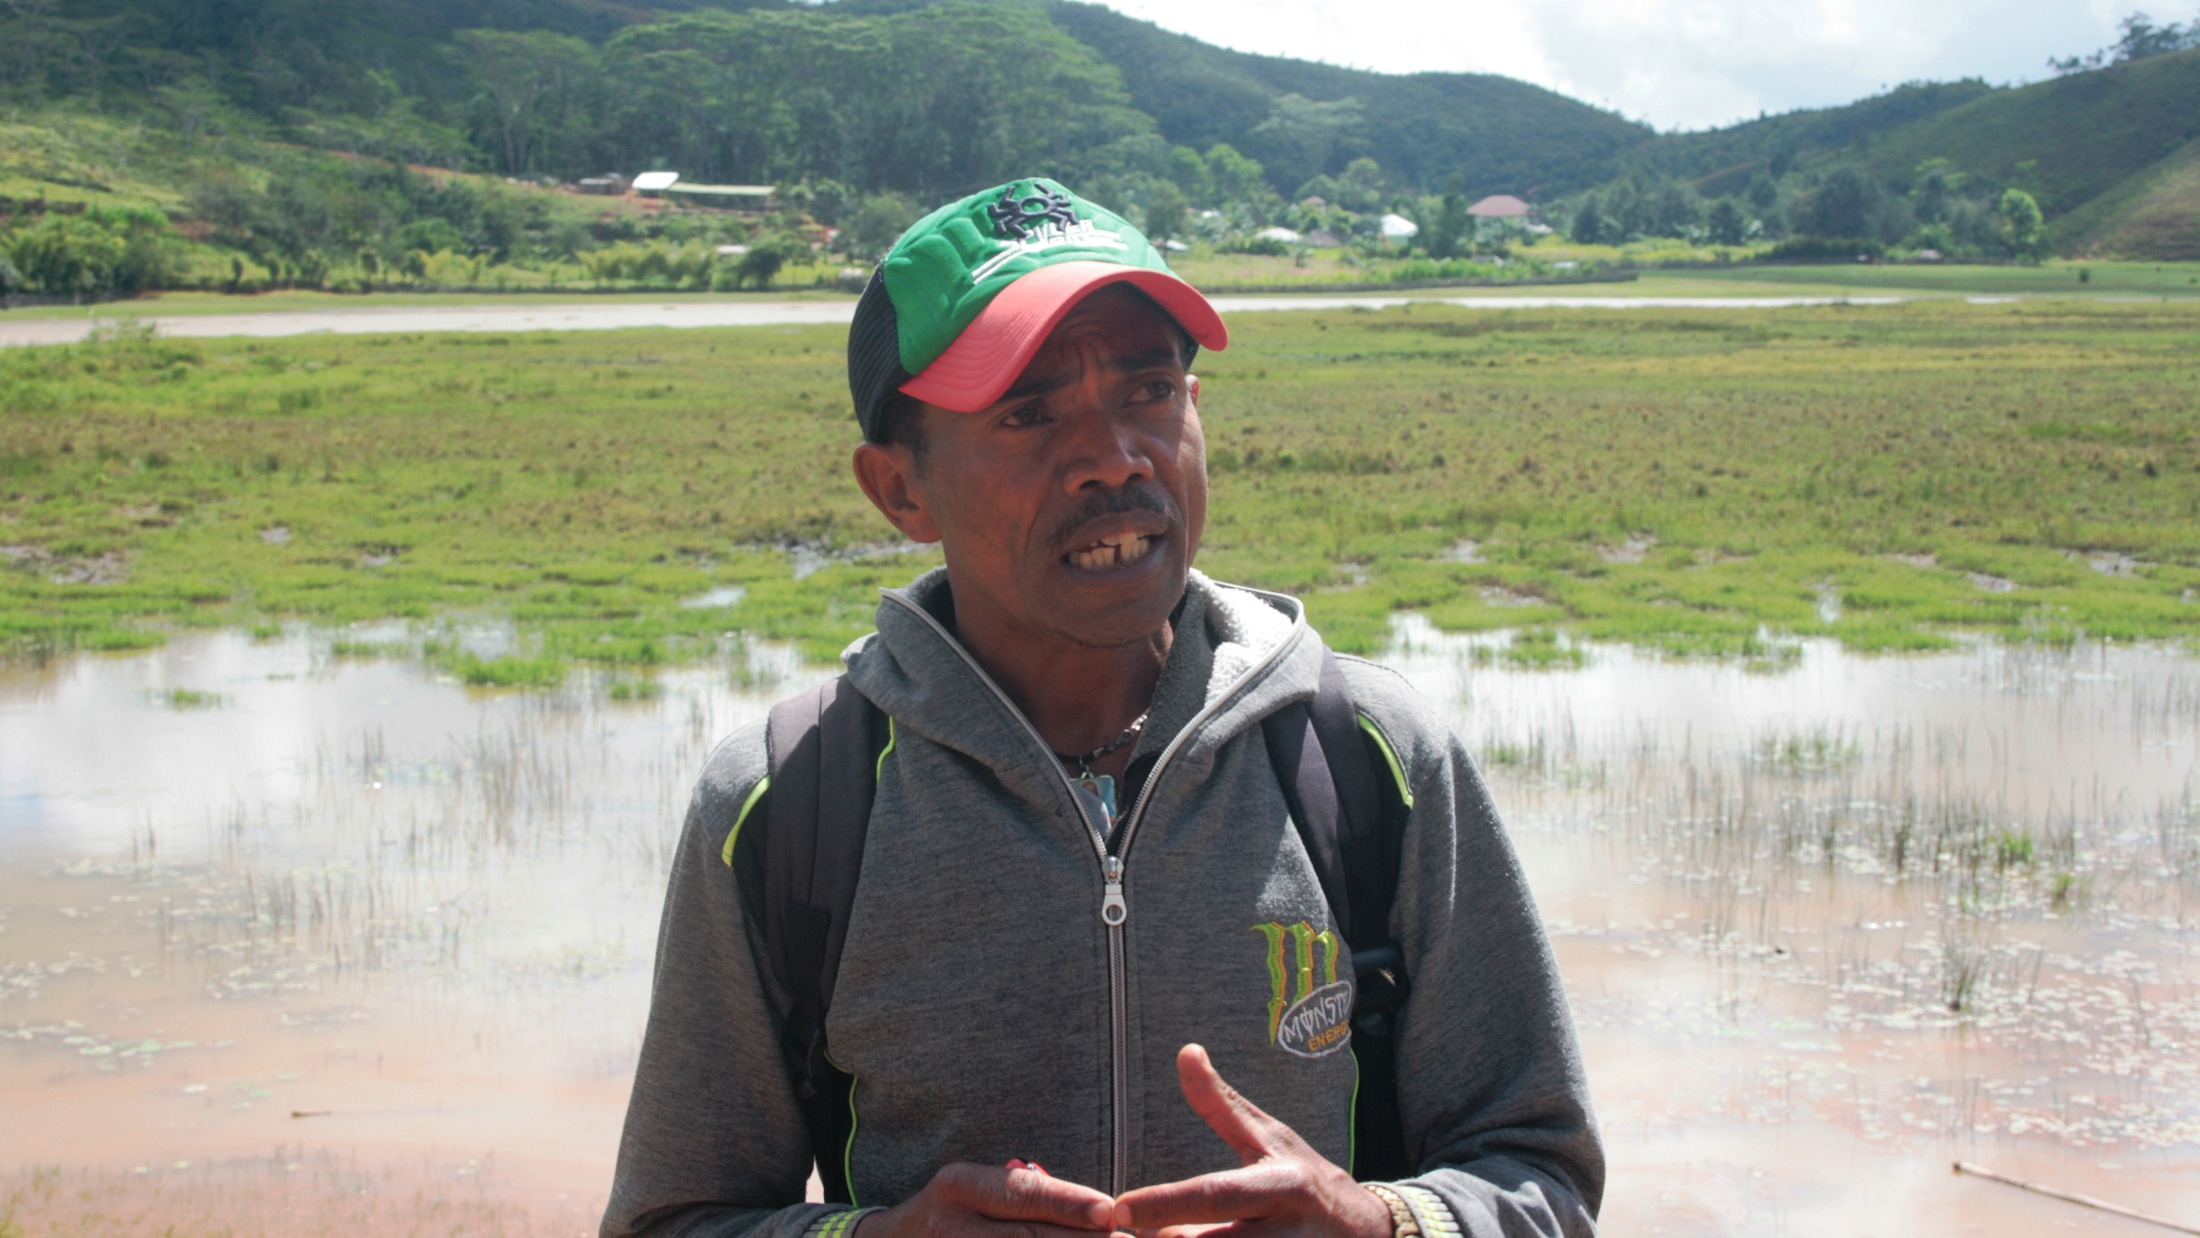 A primary school teach and member of the local disaster management committee describes how moving certain crops out of flood plans increased resilience.